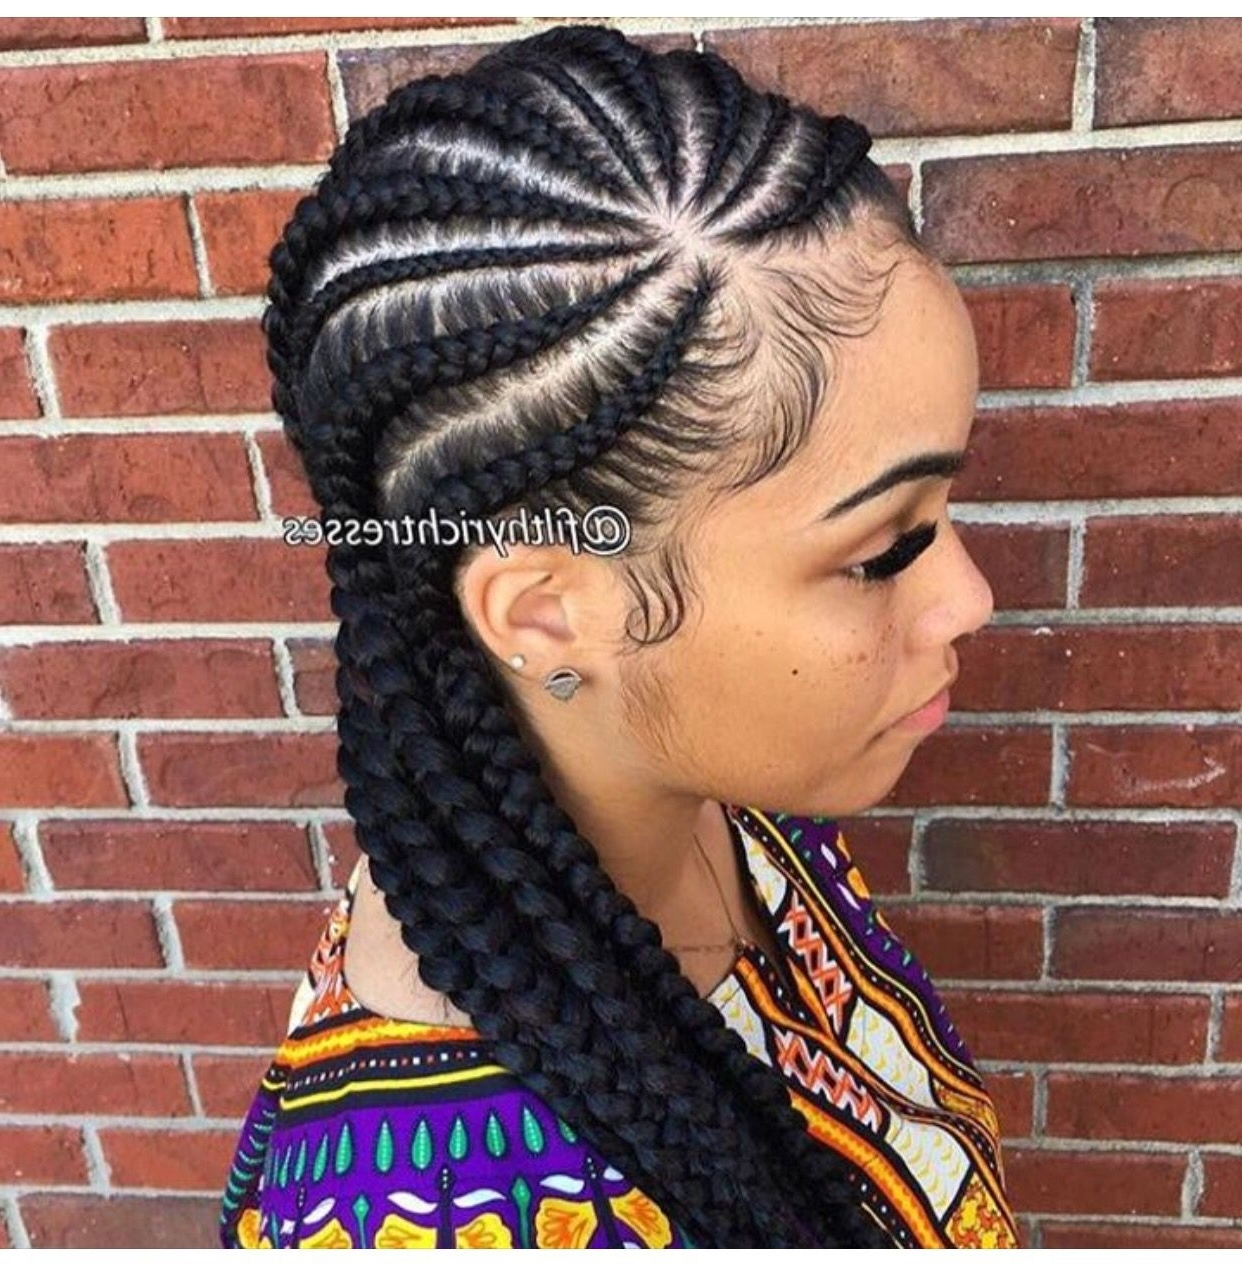 2018 Braided Hairstyles For Black Girls In Shocking Pinjanelle Bourda On Hairstyles Black Girl Image Of (View 7 of 15)